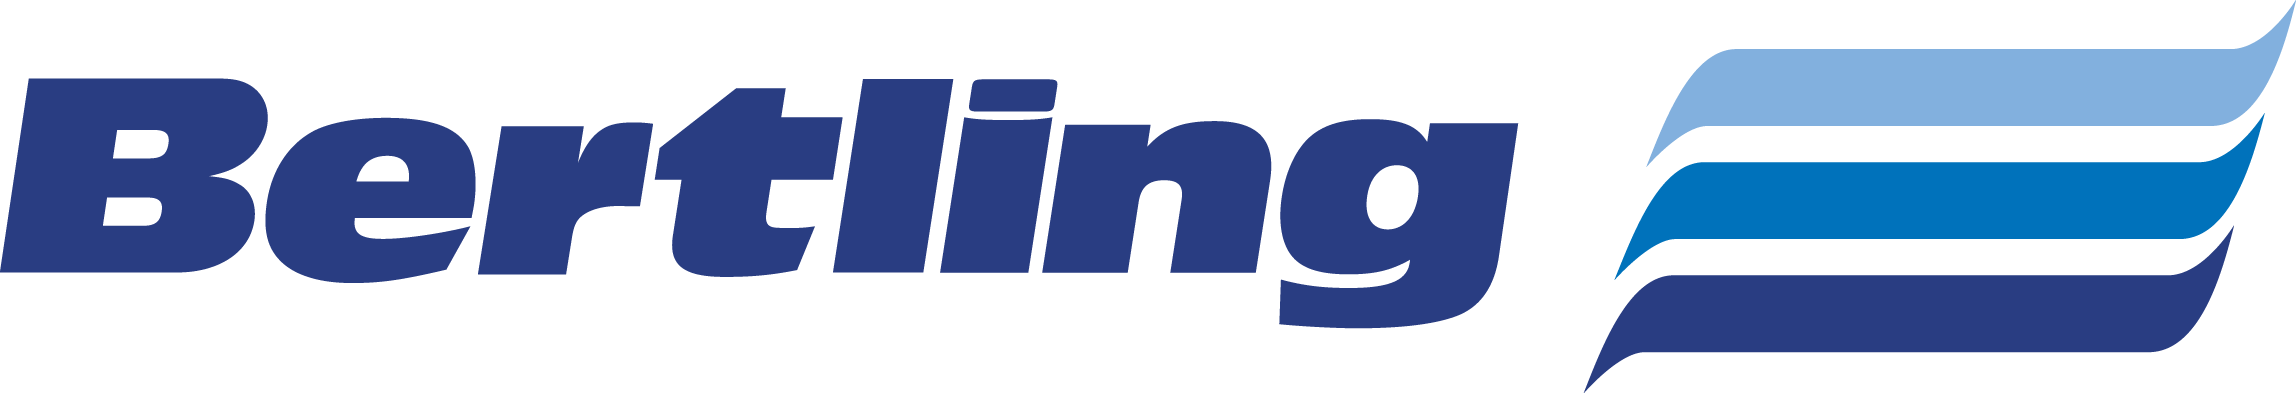 Bertling logotype transparent